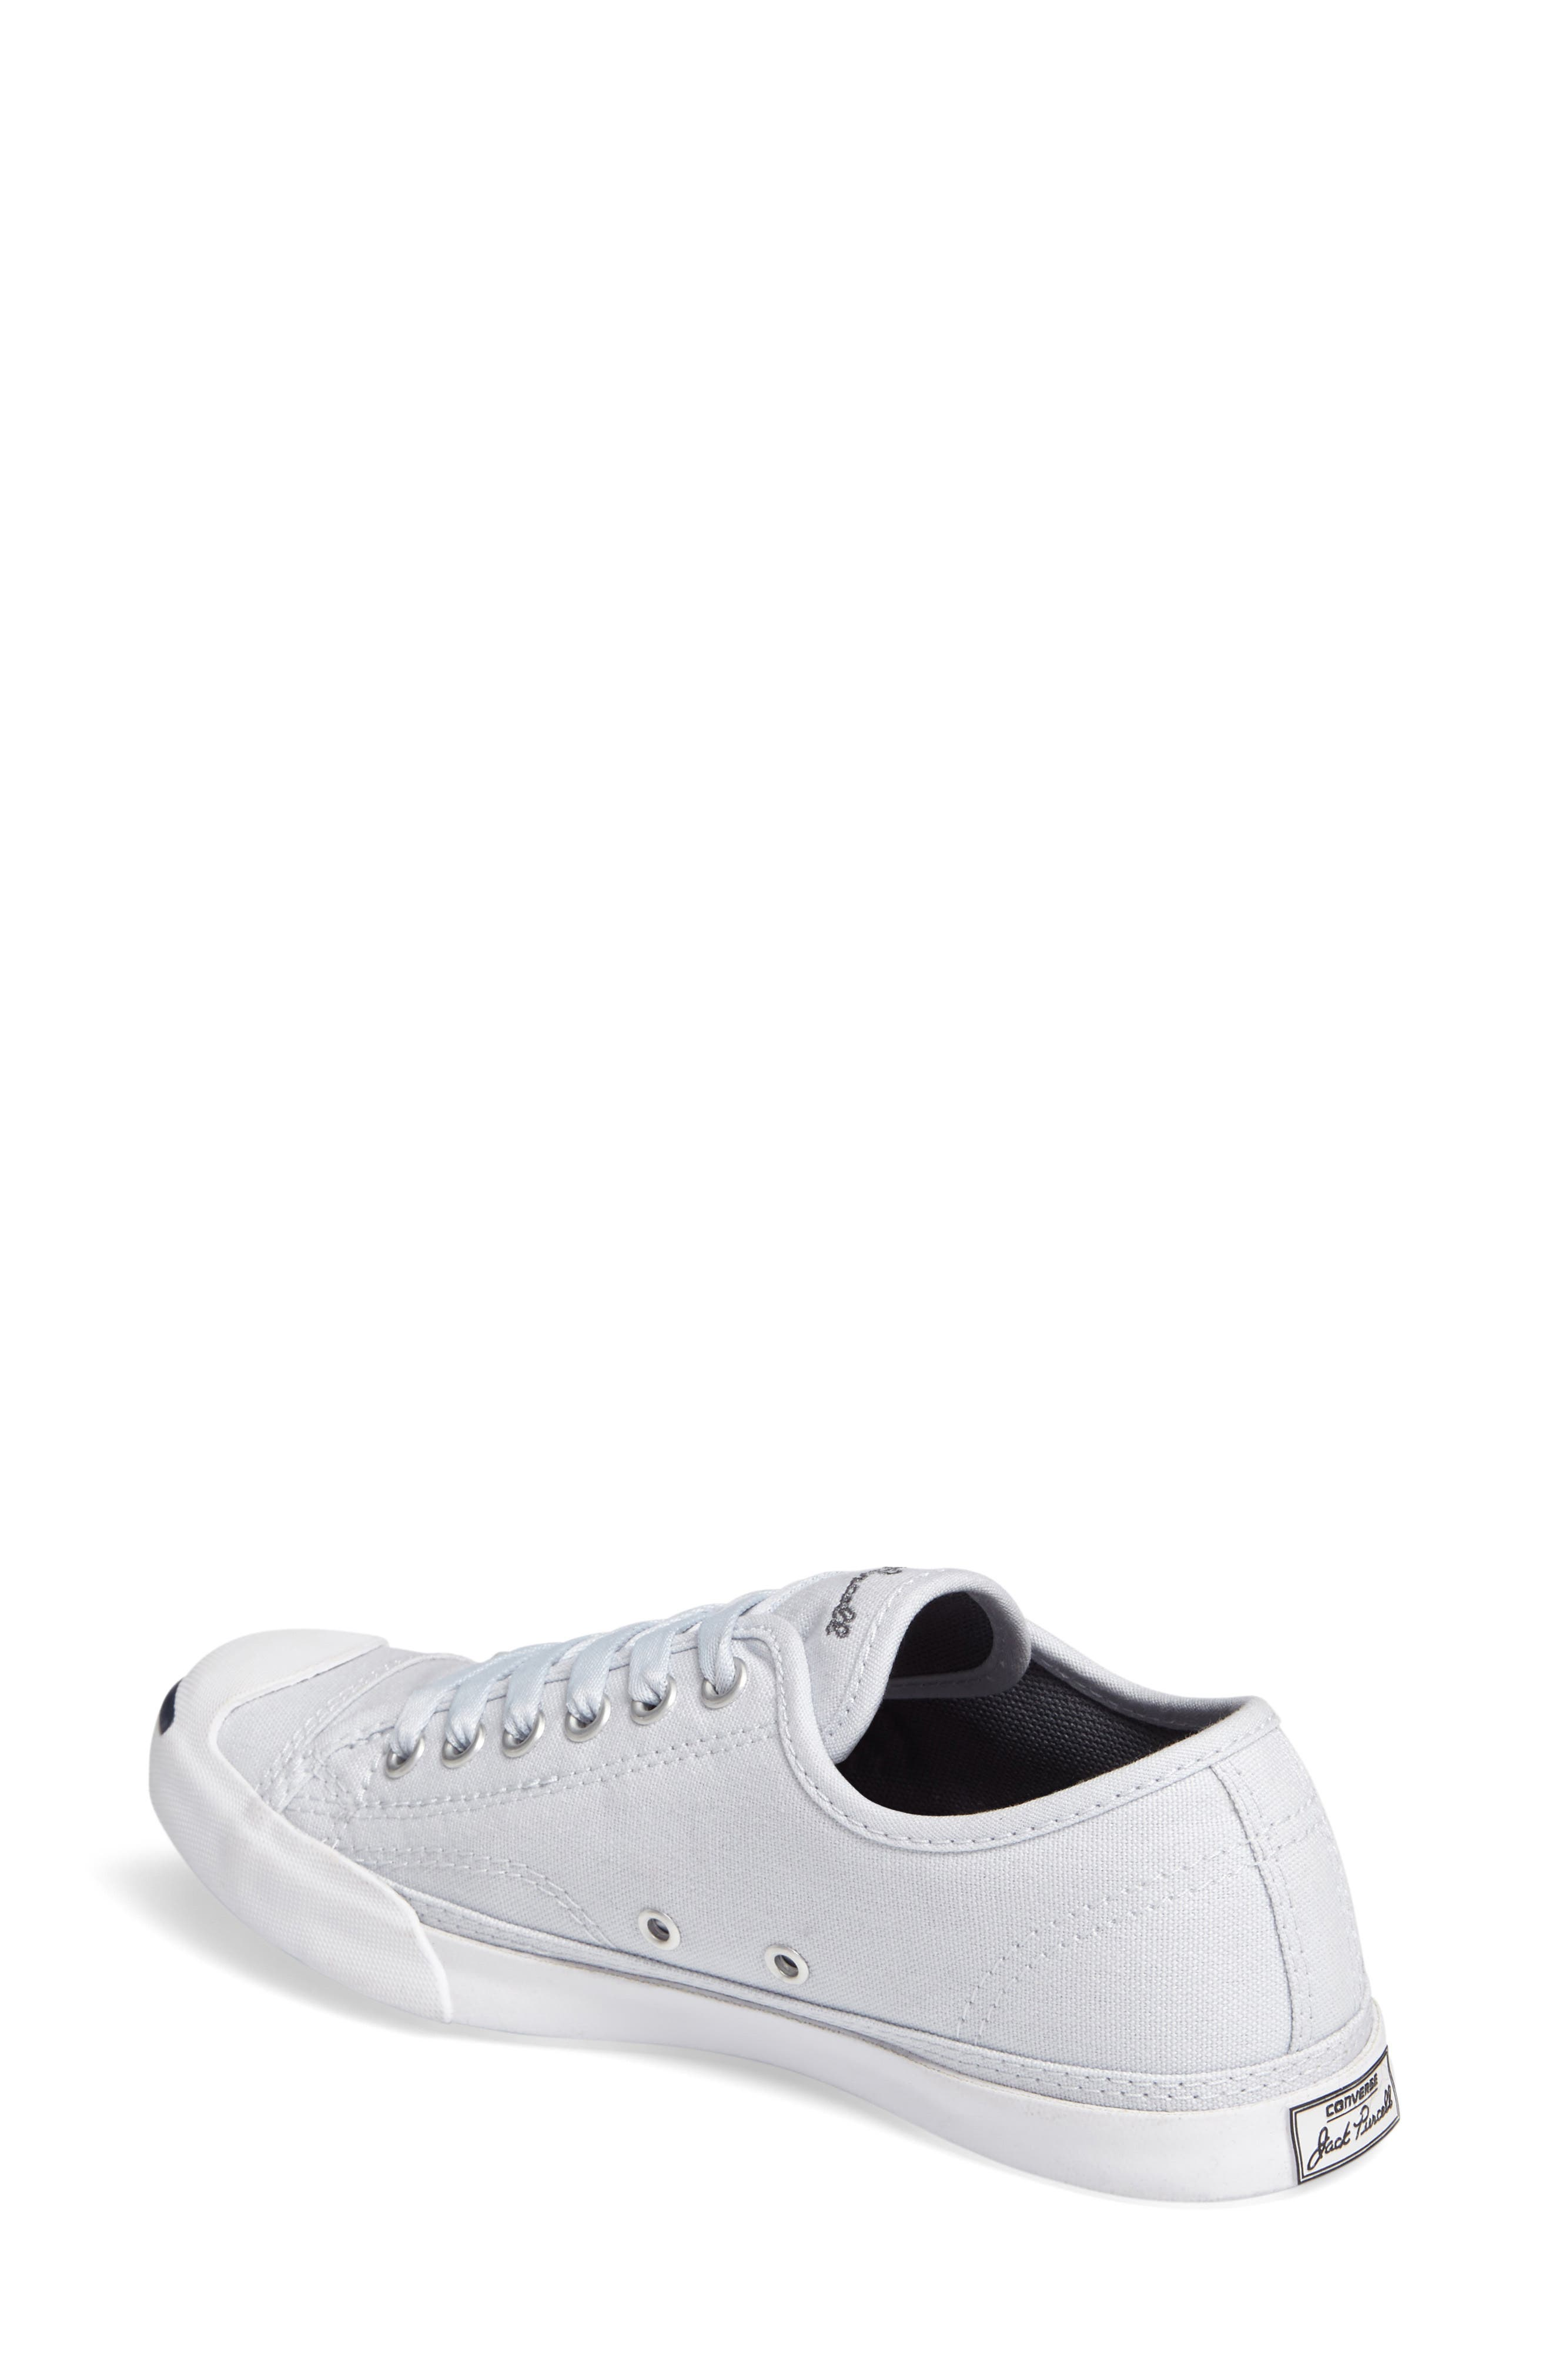 Jack Purcell Signature Ox Low Top Sneaker,                             Alternate thumbnail 2, color,                             Platinum